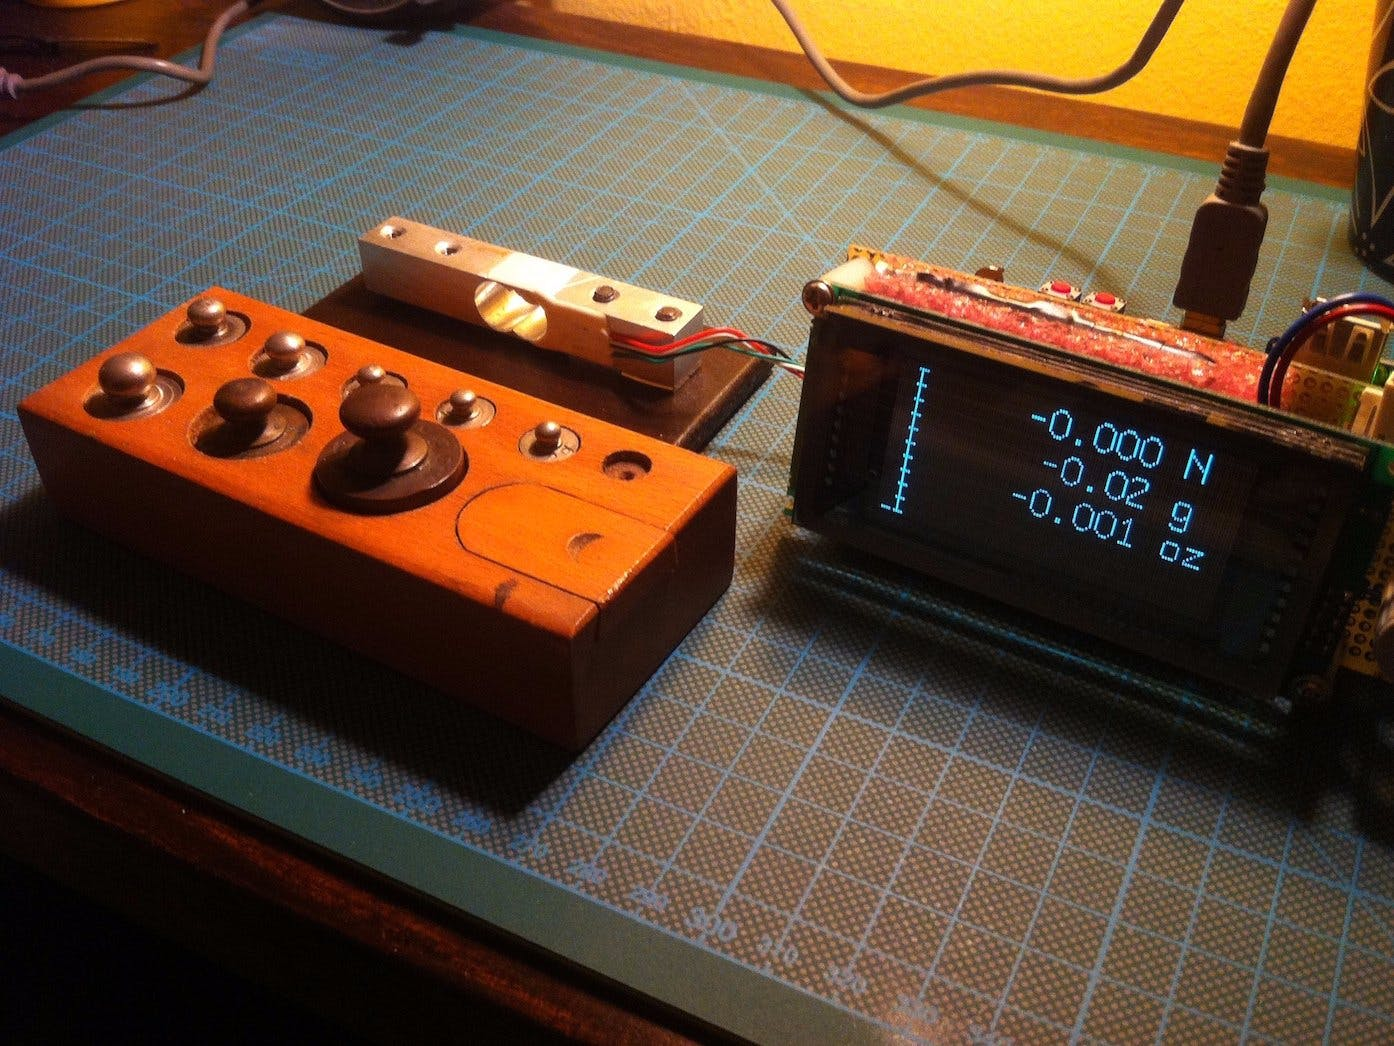 Arduino-based Digital Scale with HX711 and VFD Display